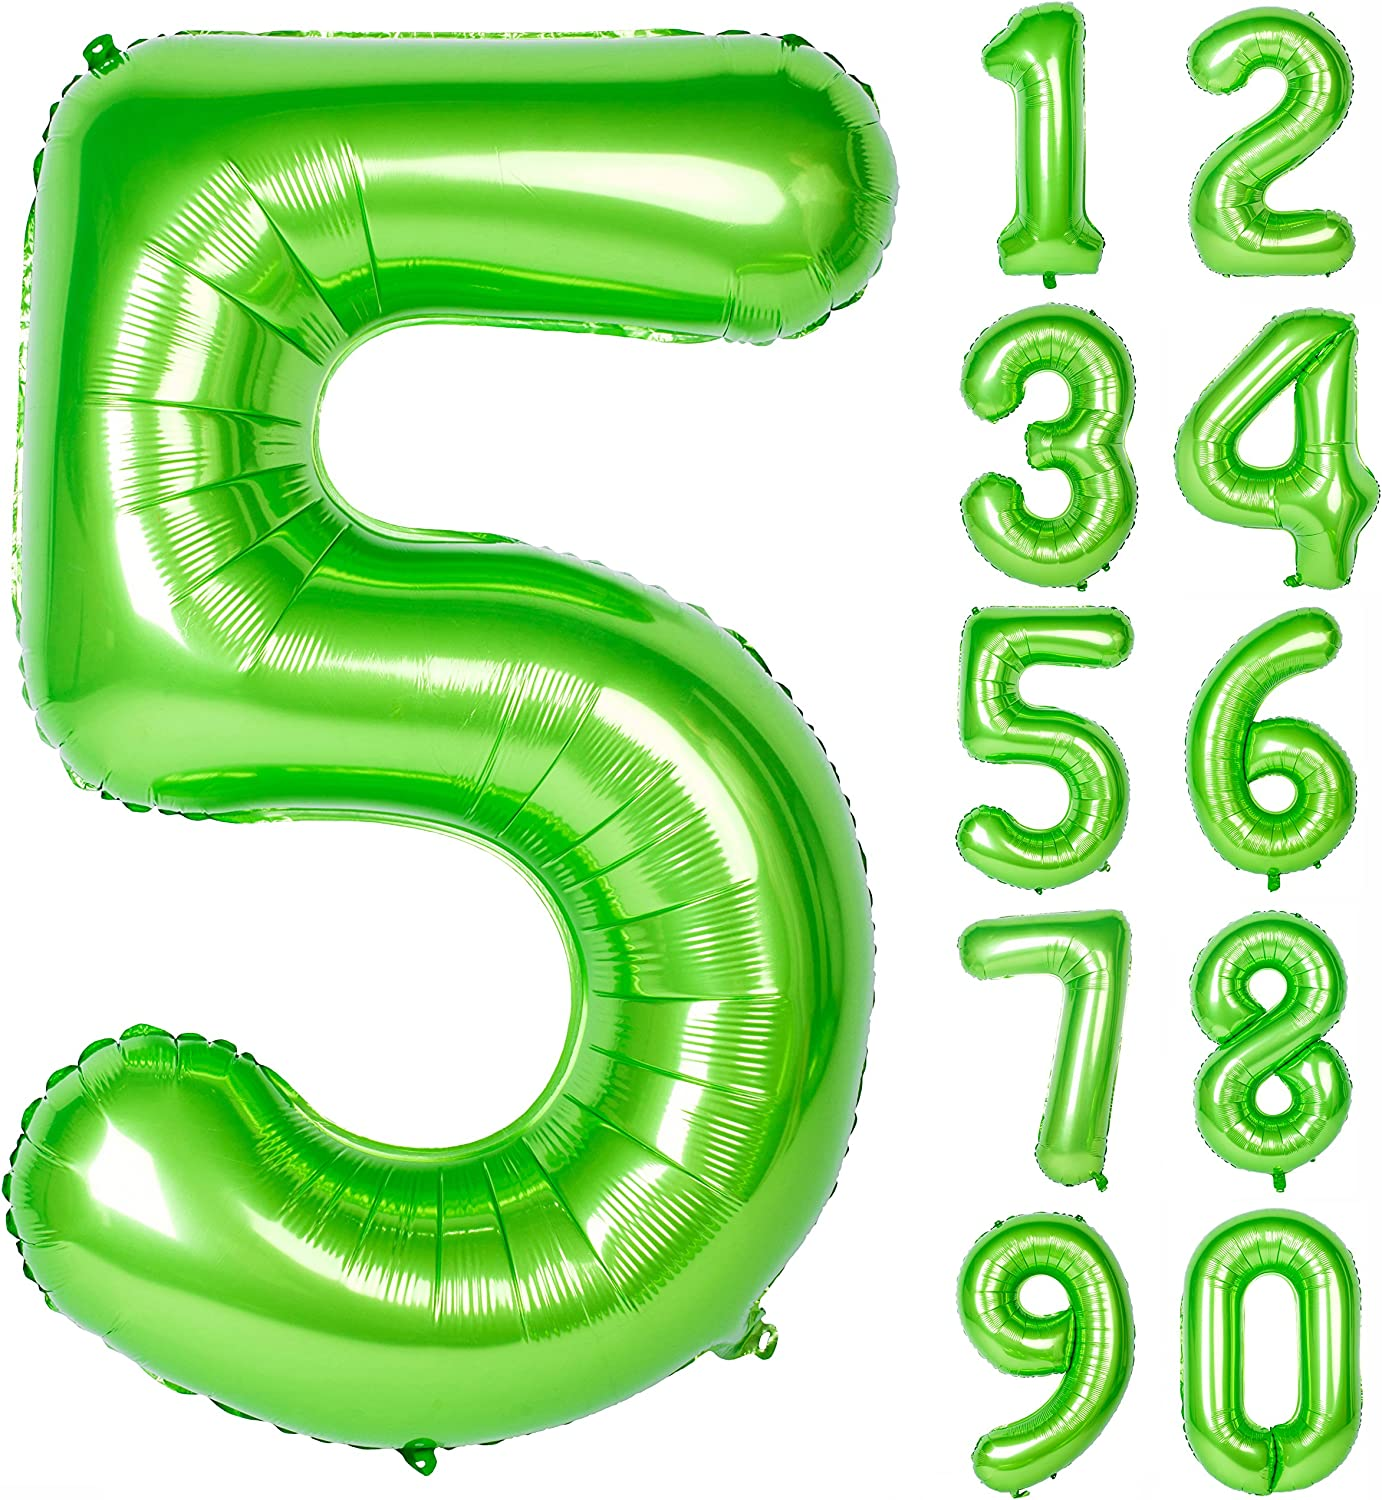 40 Inch Green Large Numbers 0-9 Birthday Party Decorations Helium Foil Mylar Big Number Balloon Digital 5